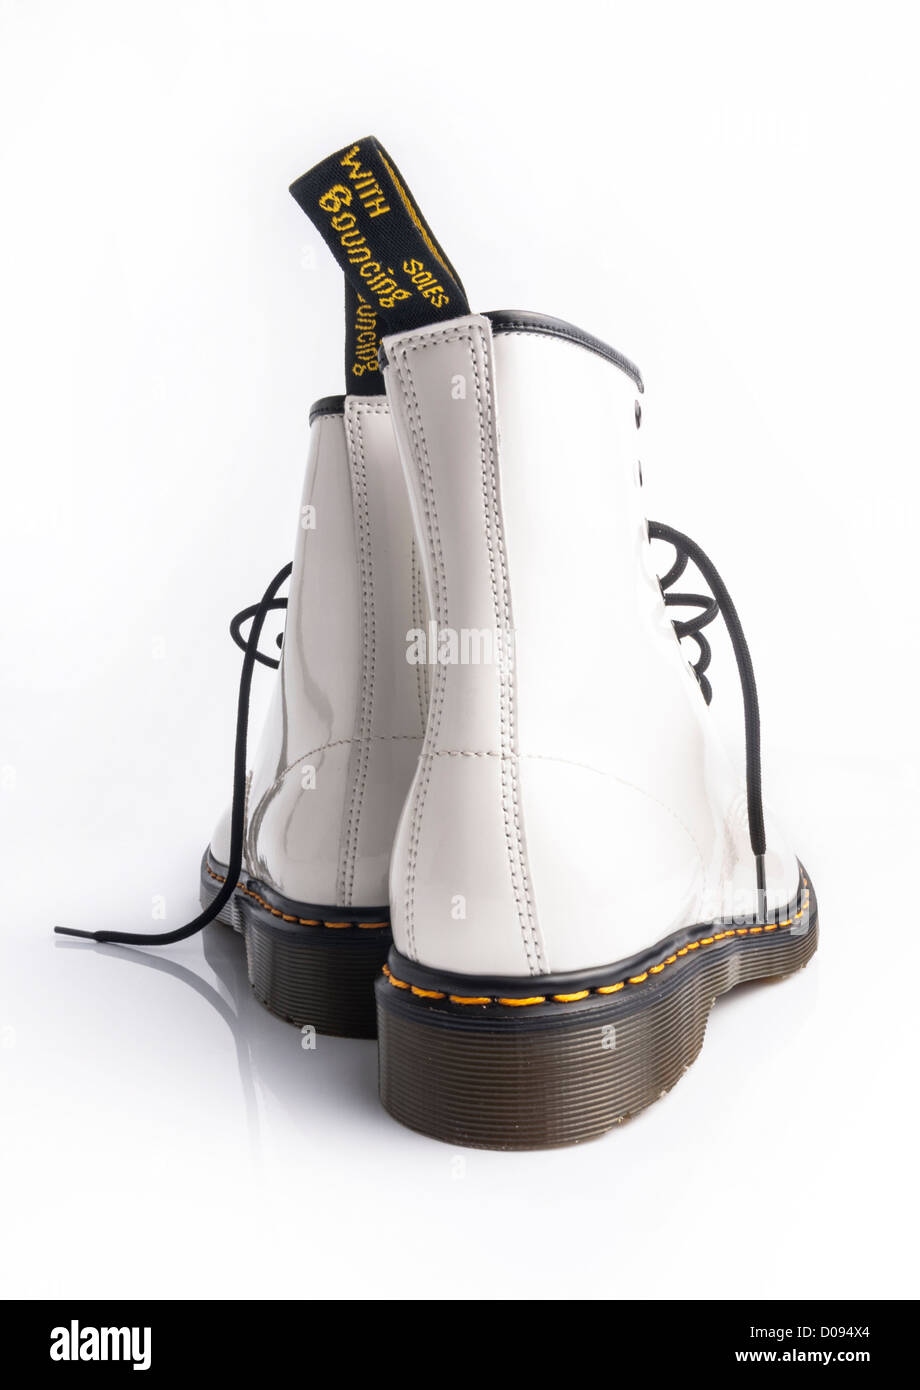 Doc marten boots stock photos doc marten boots stock images alamy heal detail of white patent leather doc marten boots on white background phillip roberts mightylinksfo